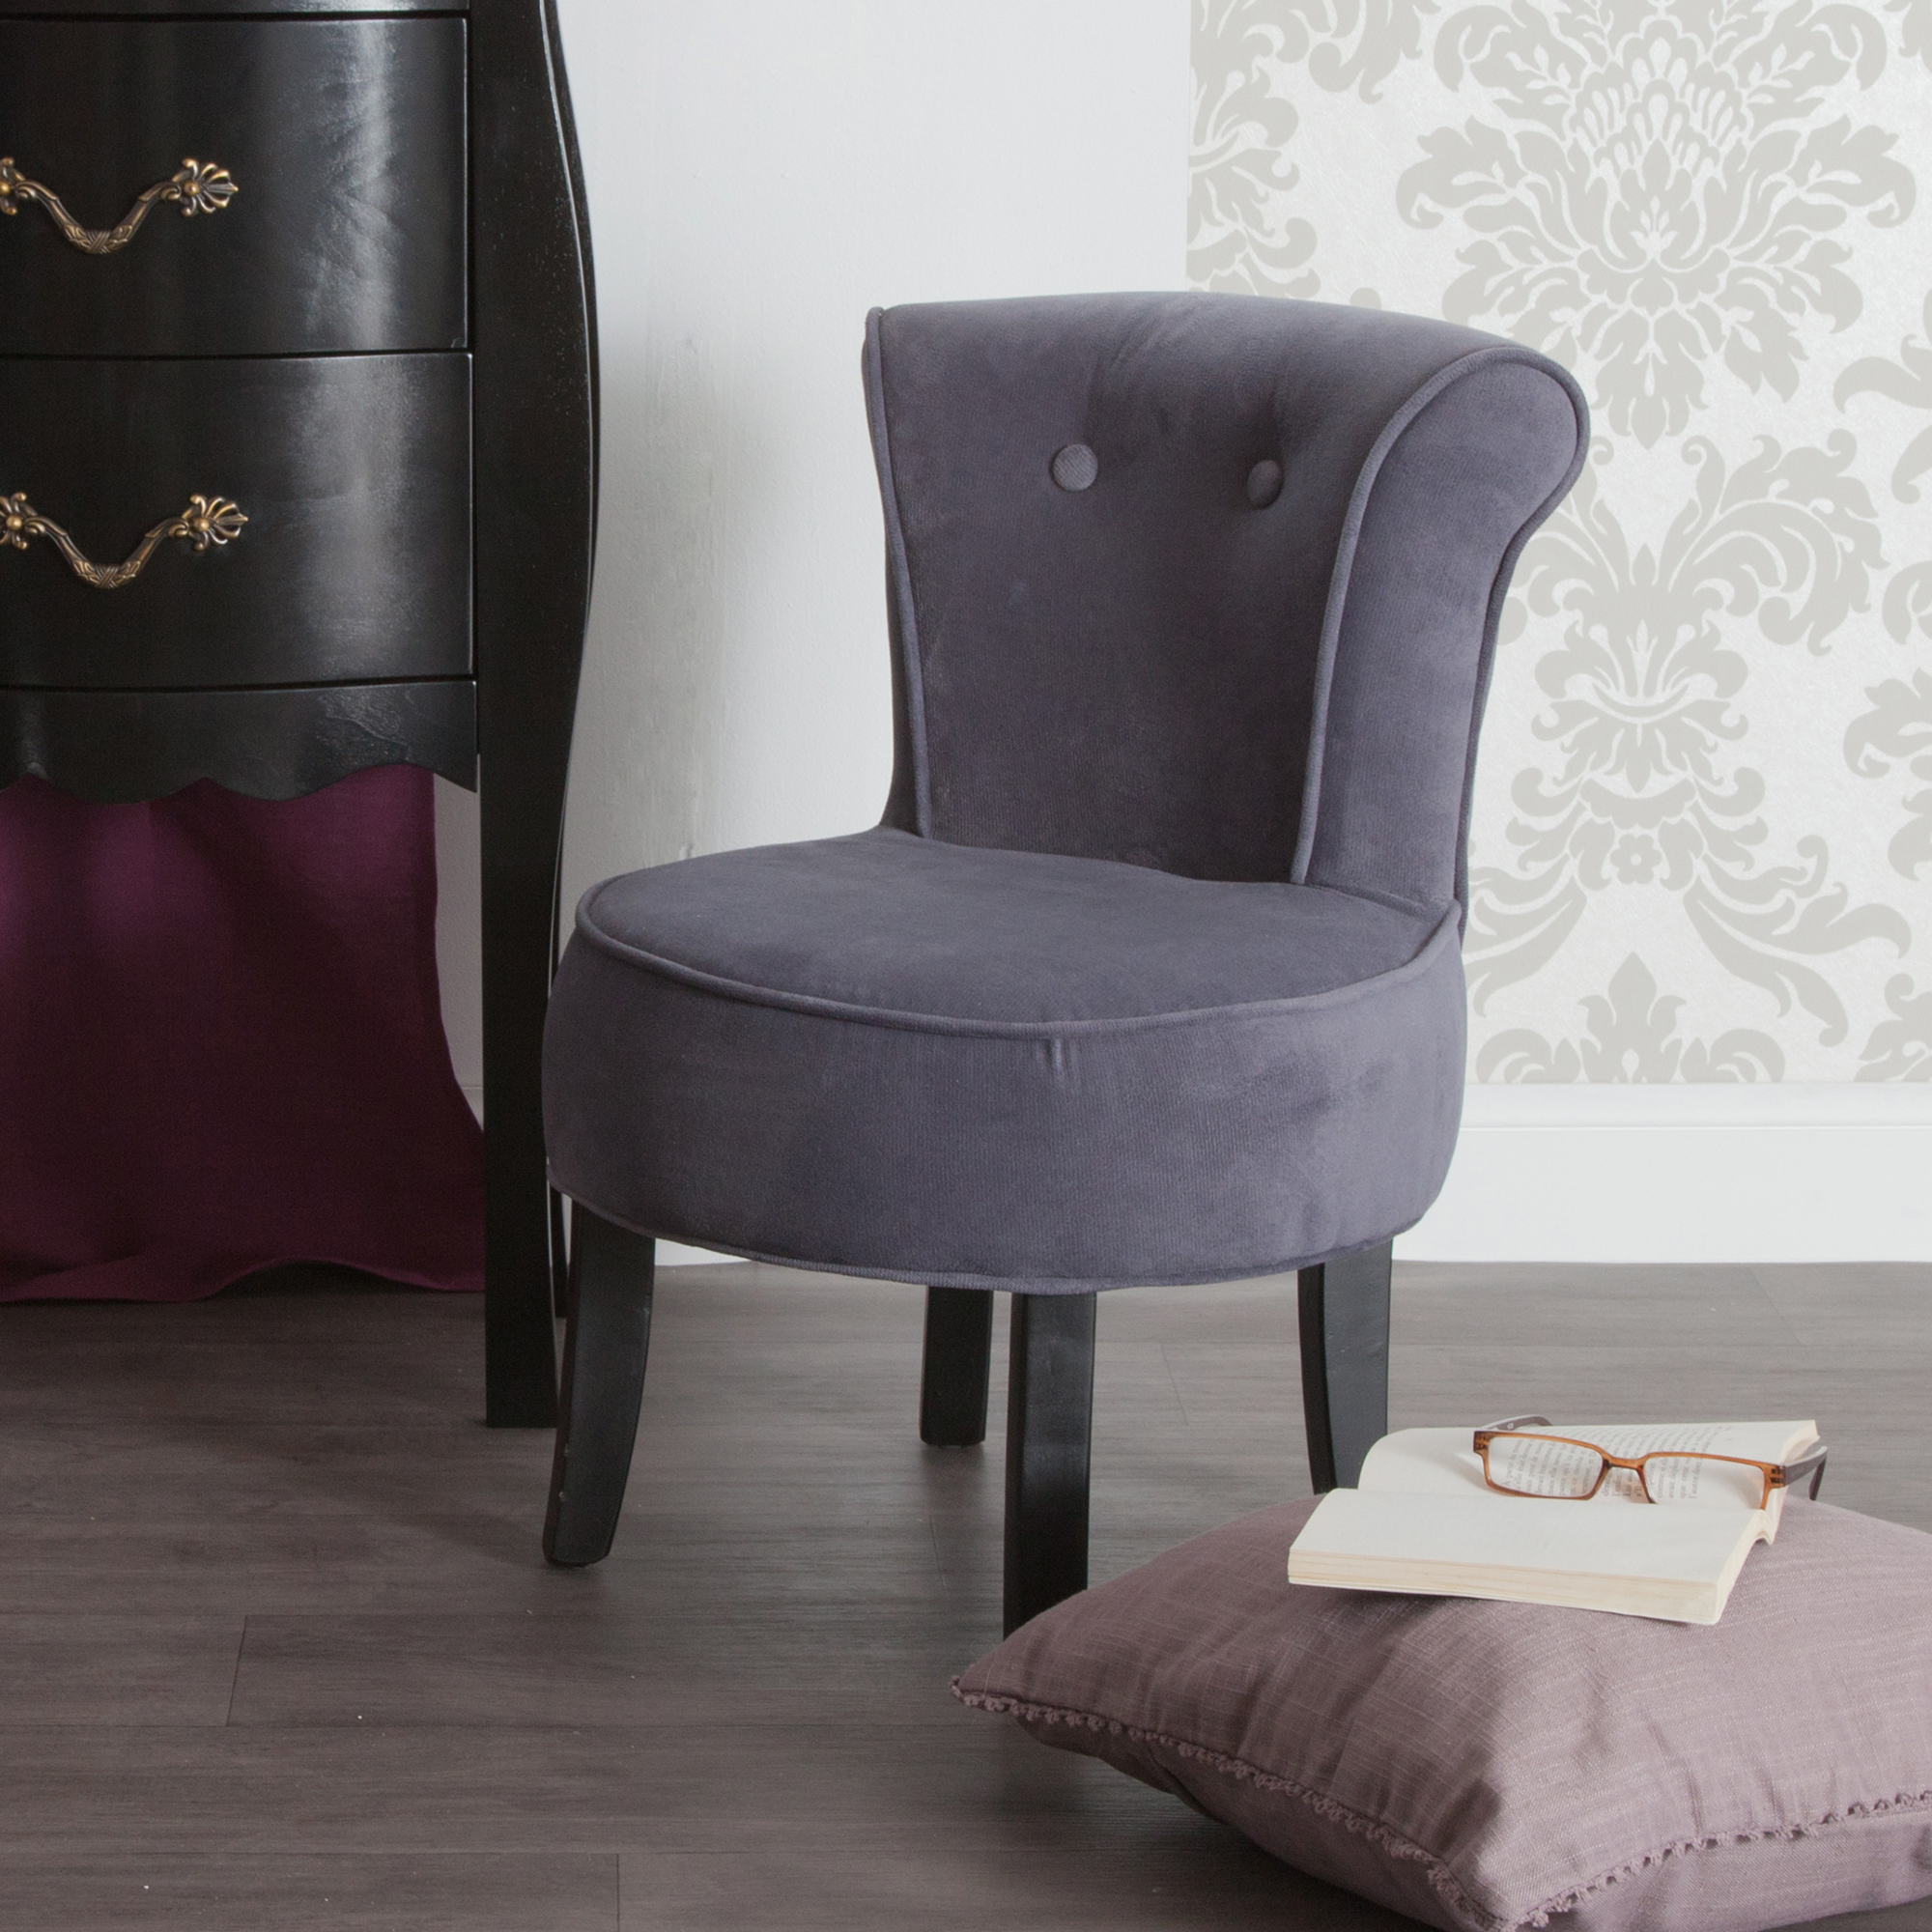 petit fauteuil de chambre id es de d coration int rieure french decor. Black Bedroom Furniture Sets. Home Design Ideas